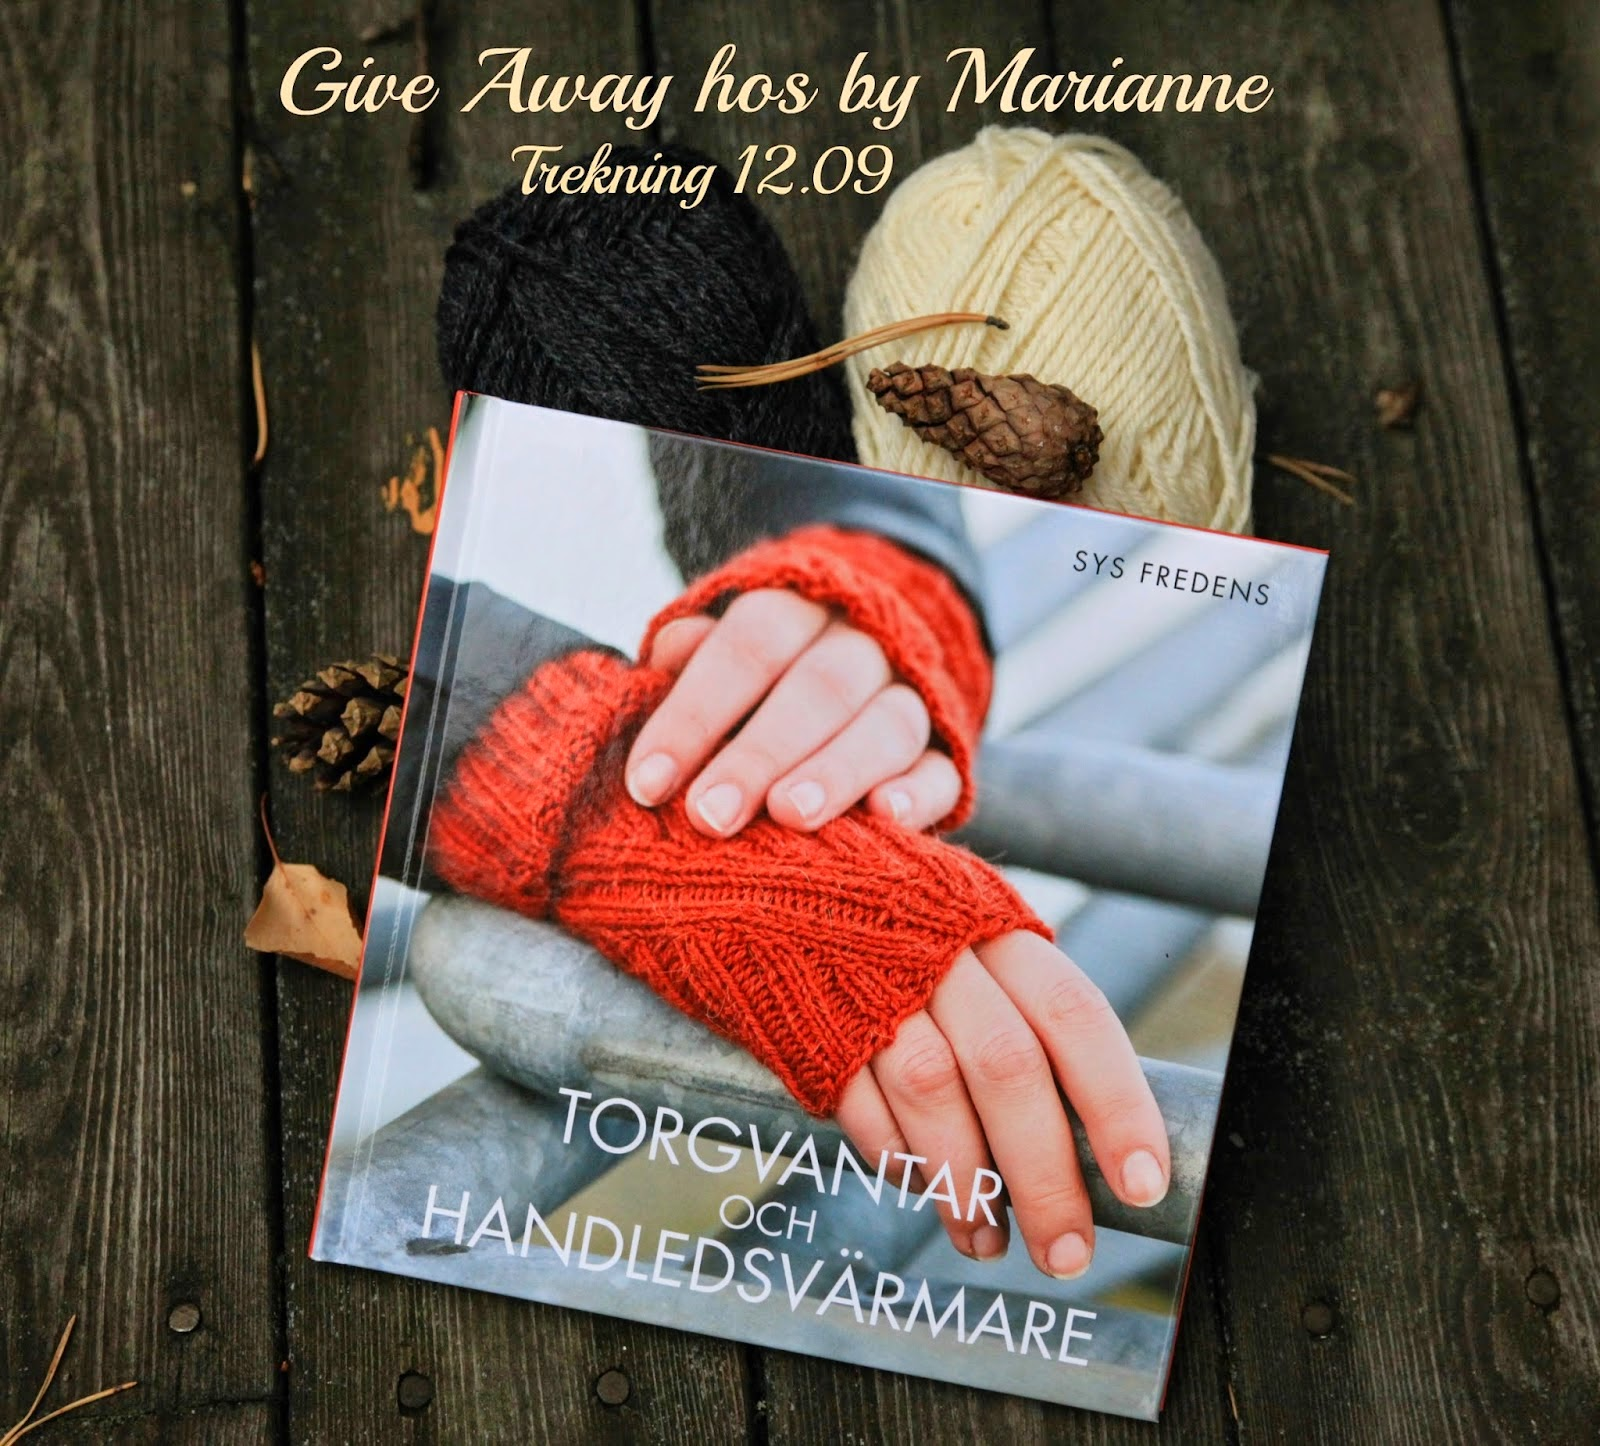 Give Away hos by Marianne.